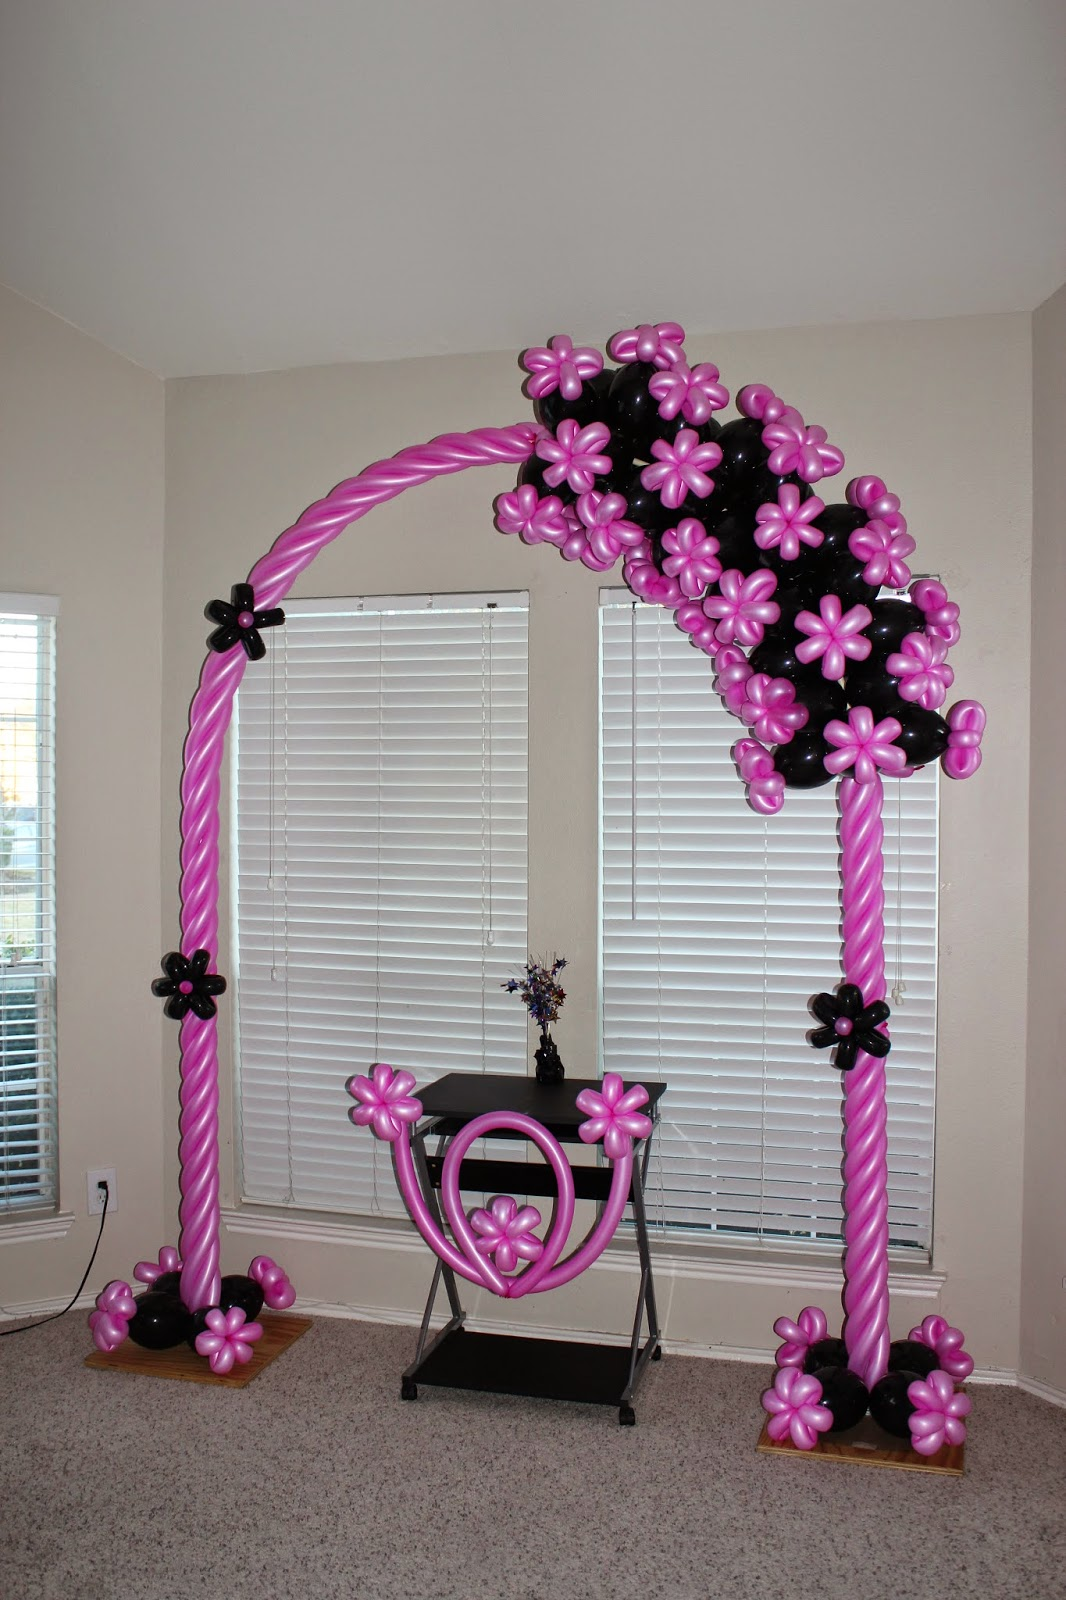 Santo Diamond Balloon Design: Pink black balloon arch